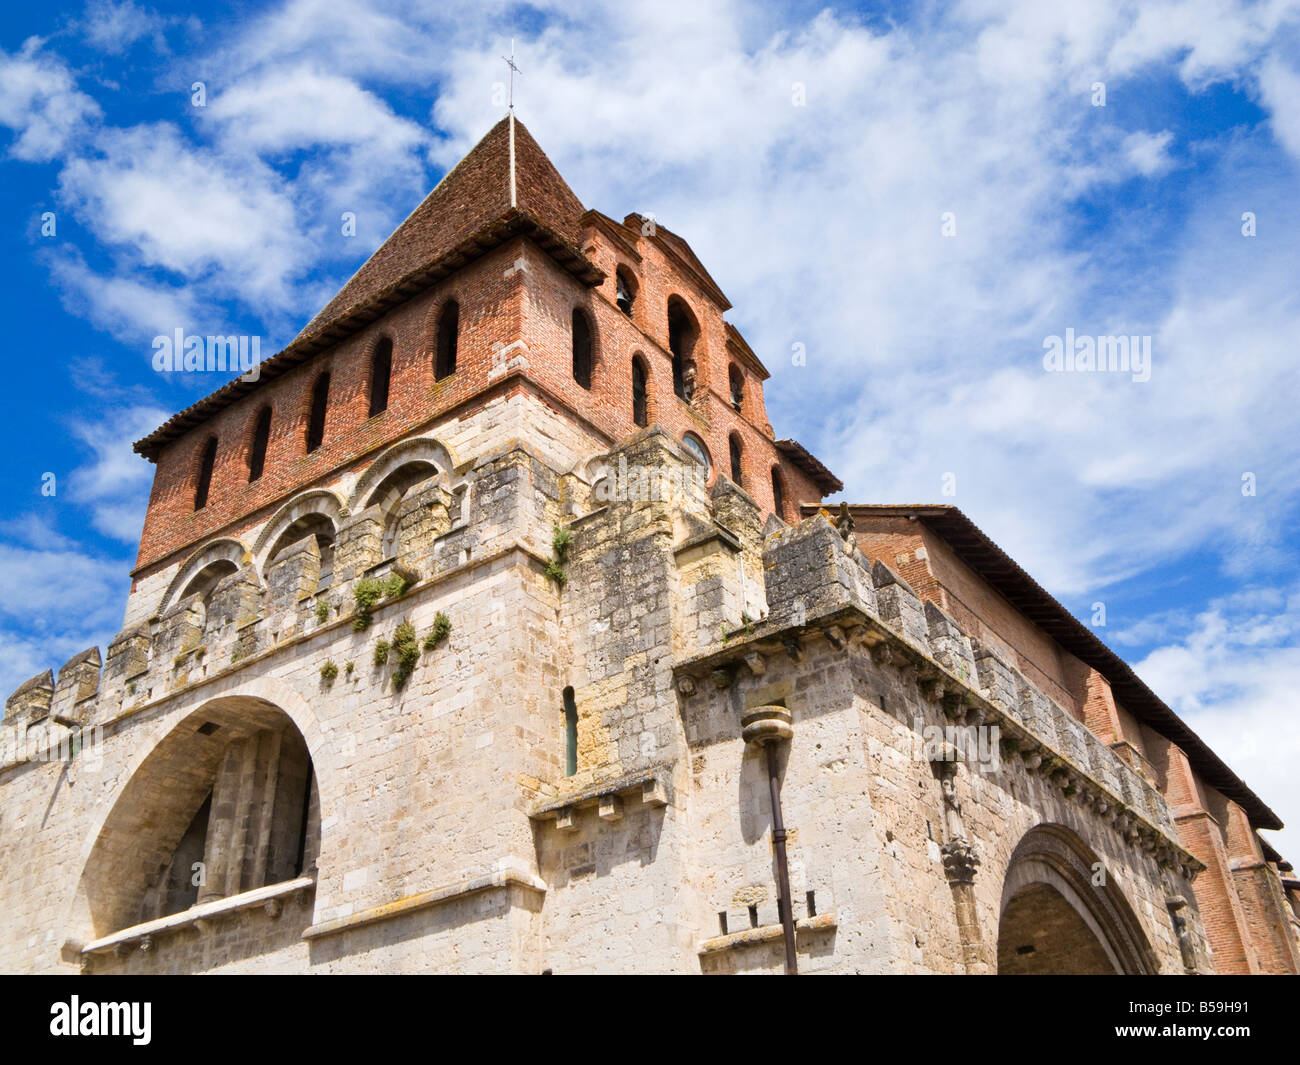 Le clocher de l'abbaye Saint Pierre de Moissac à Moissac, Tarn et Garonne, France Europe Photo Stock